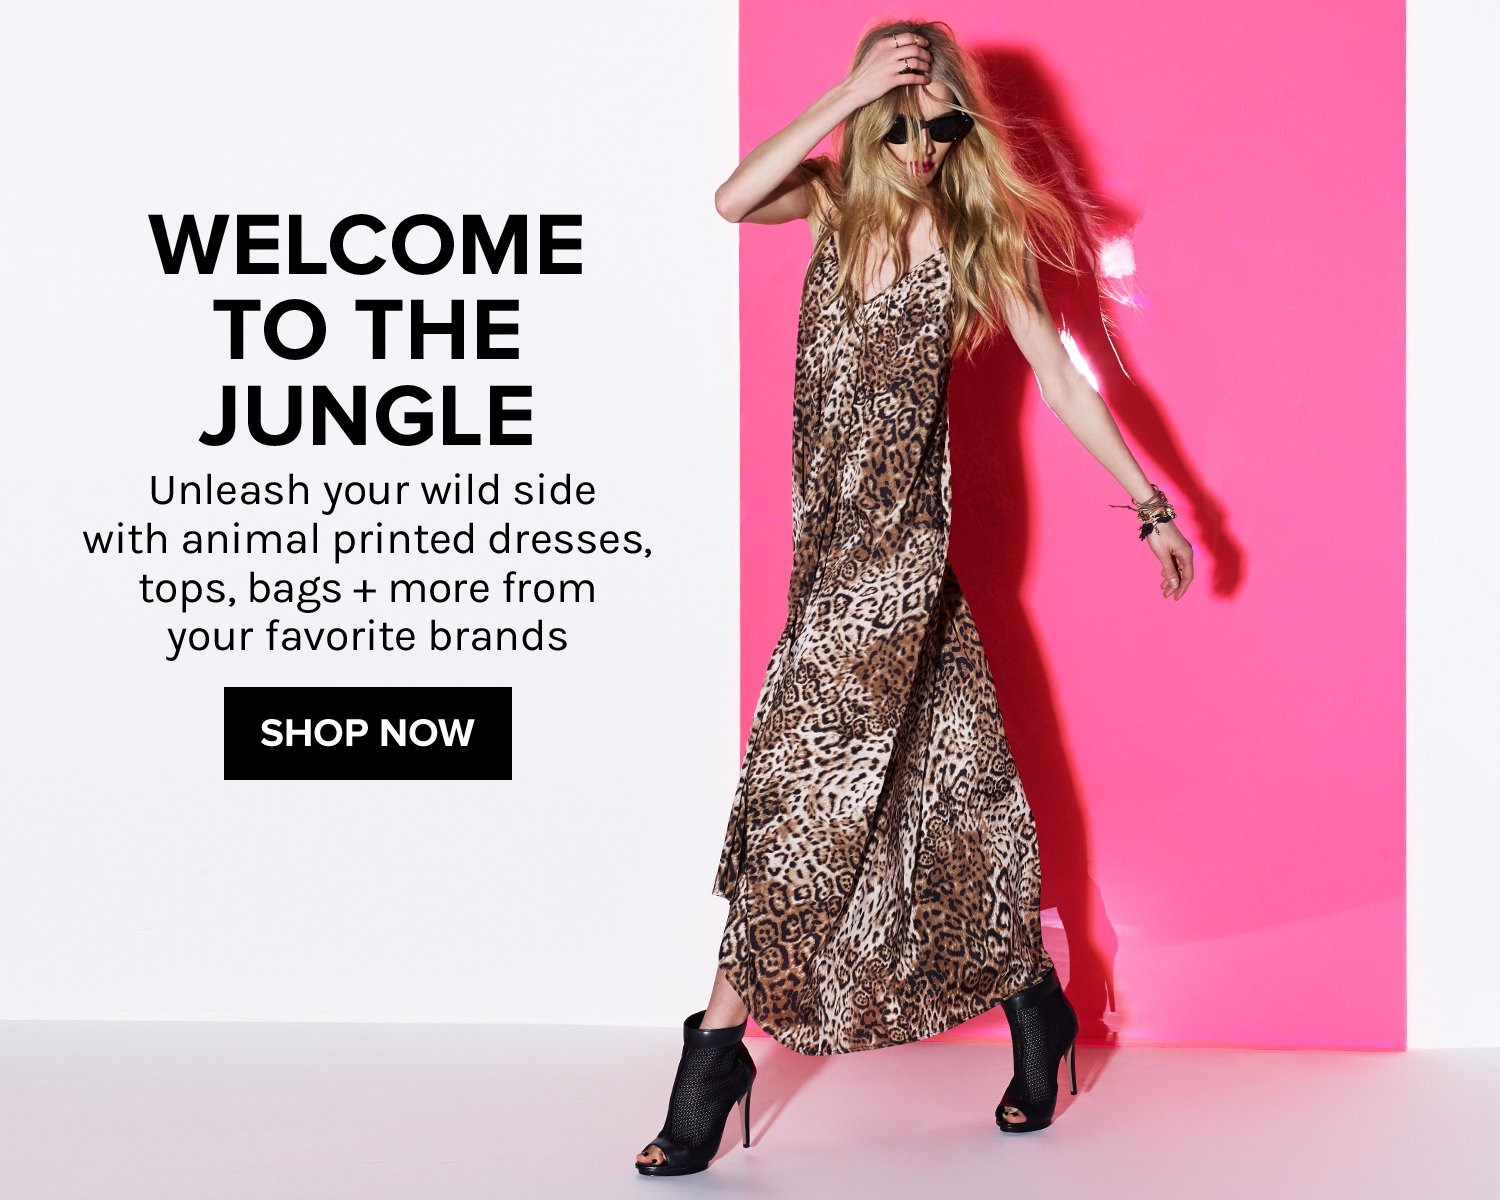 Welcome to the Jungle. Unleash your wild side with animal printed dresses, tops, bags + more from your favorite brands. SHOP NOW!